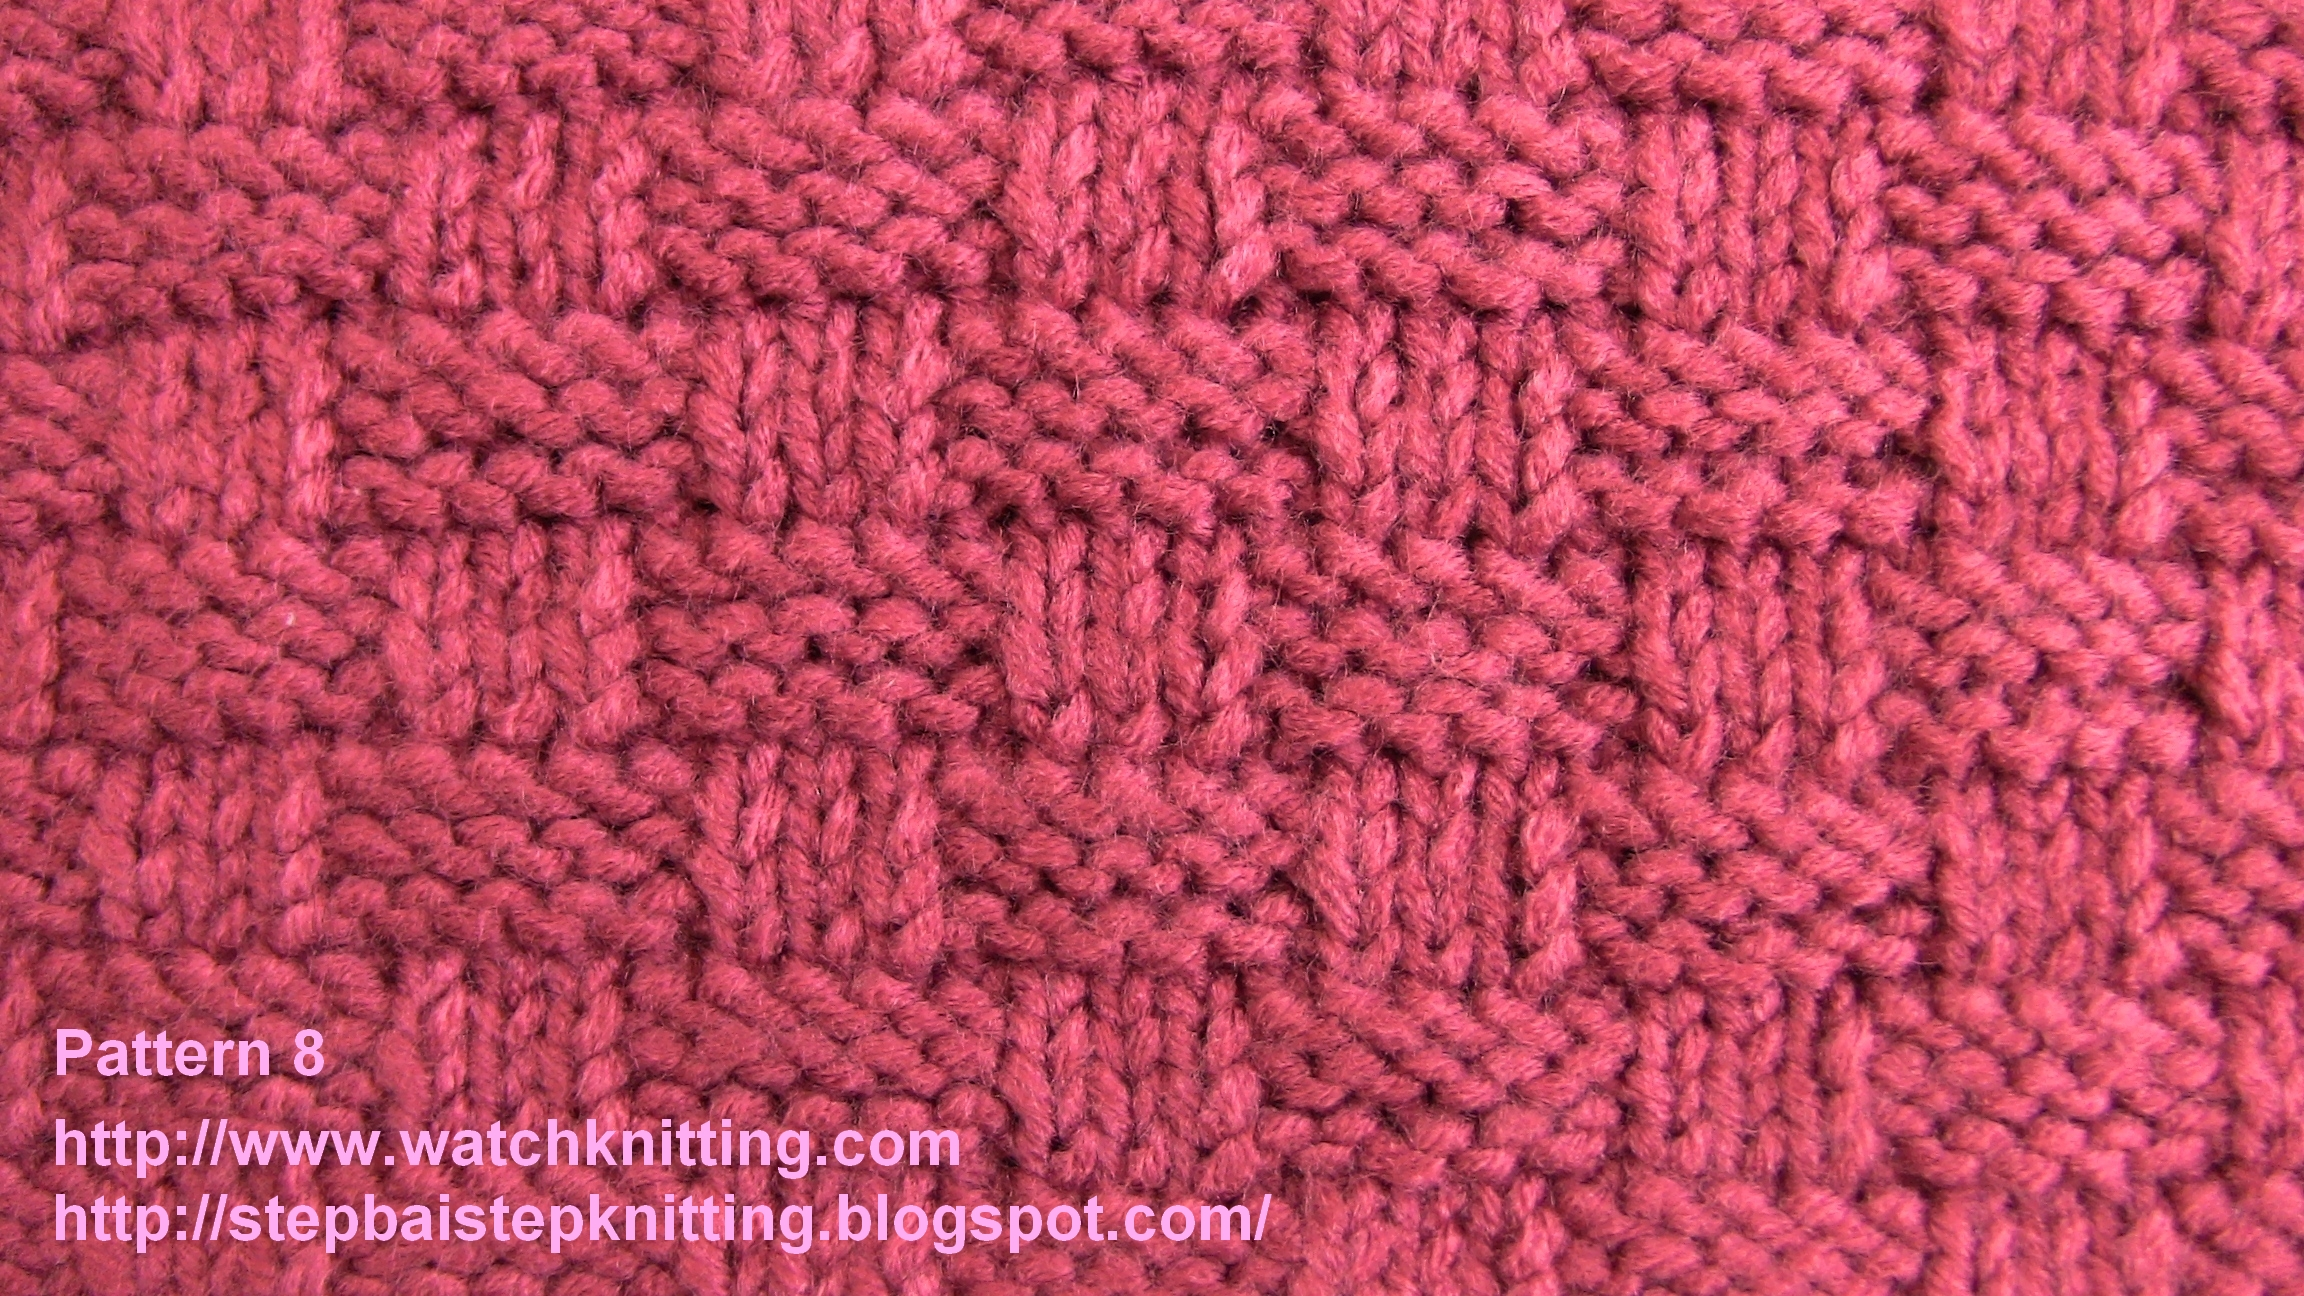 Knit Stitch Instructions With Pictures : watch Simple Knitting Models - Pattern 8 (Basket model)